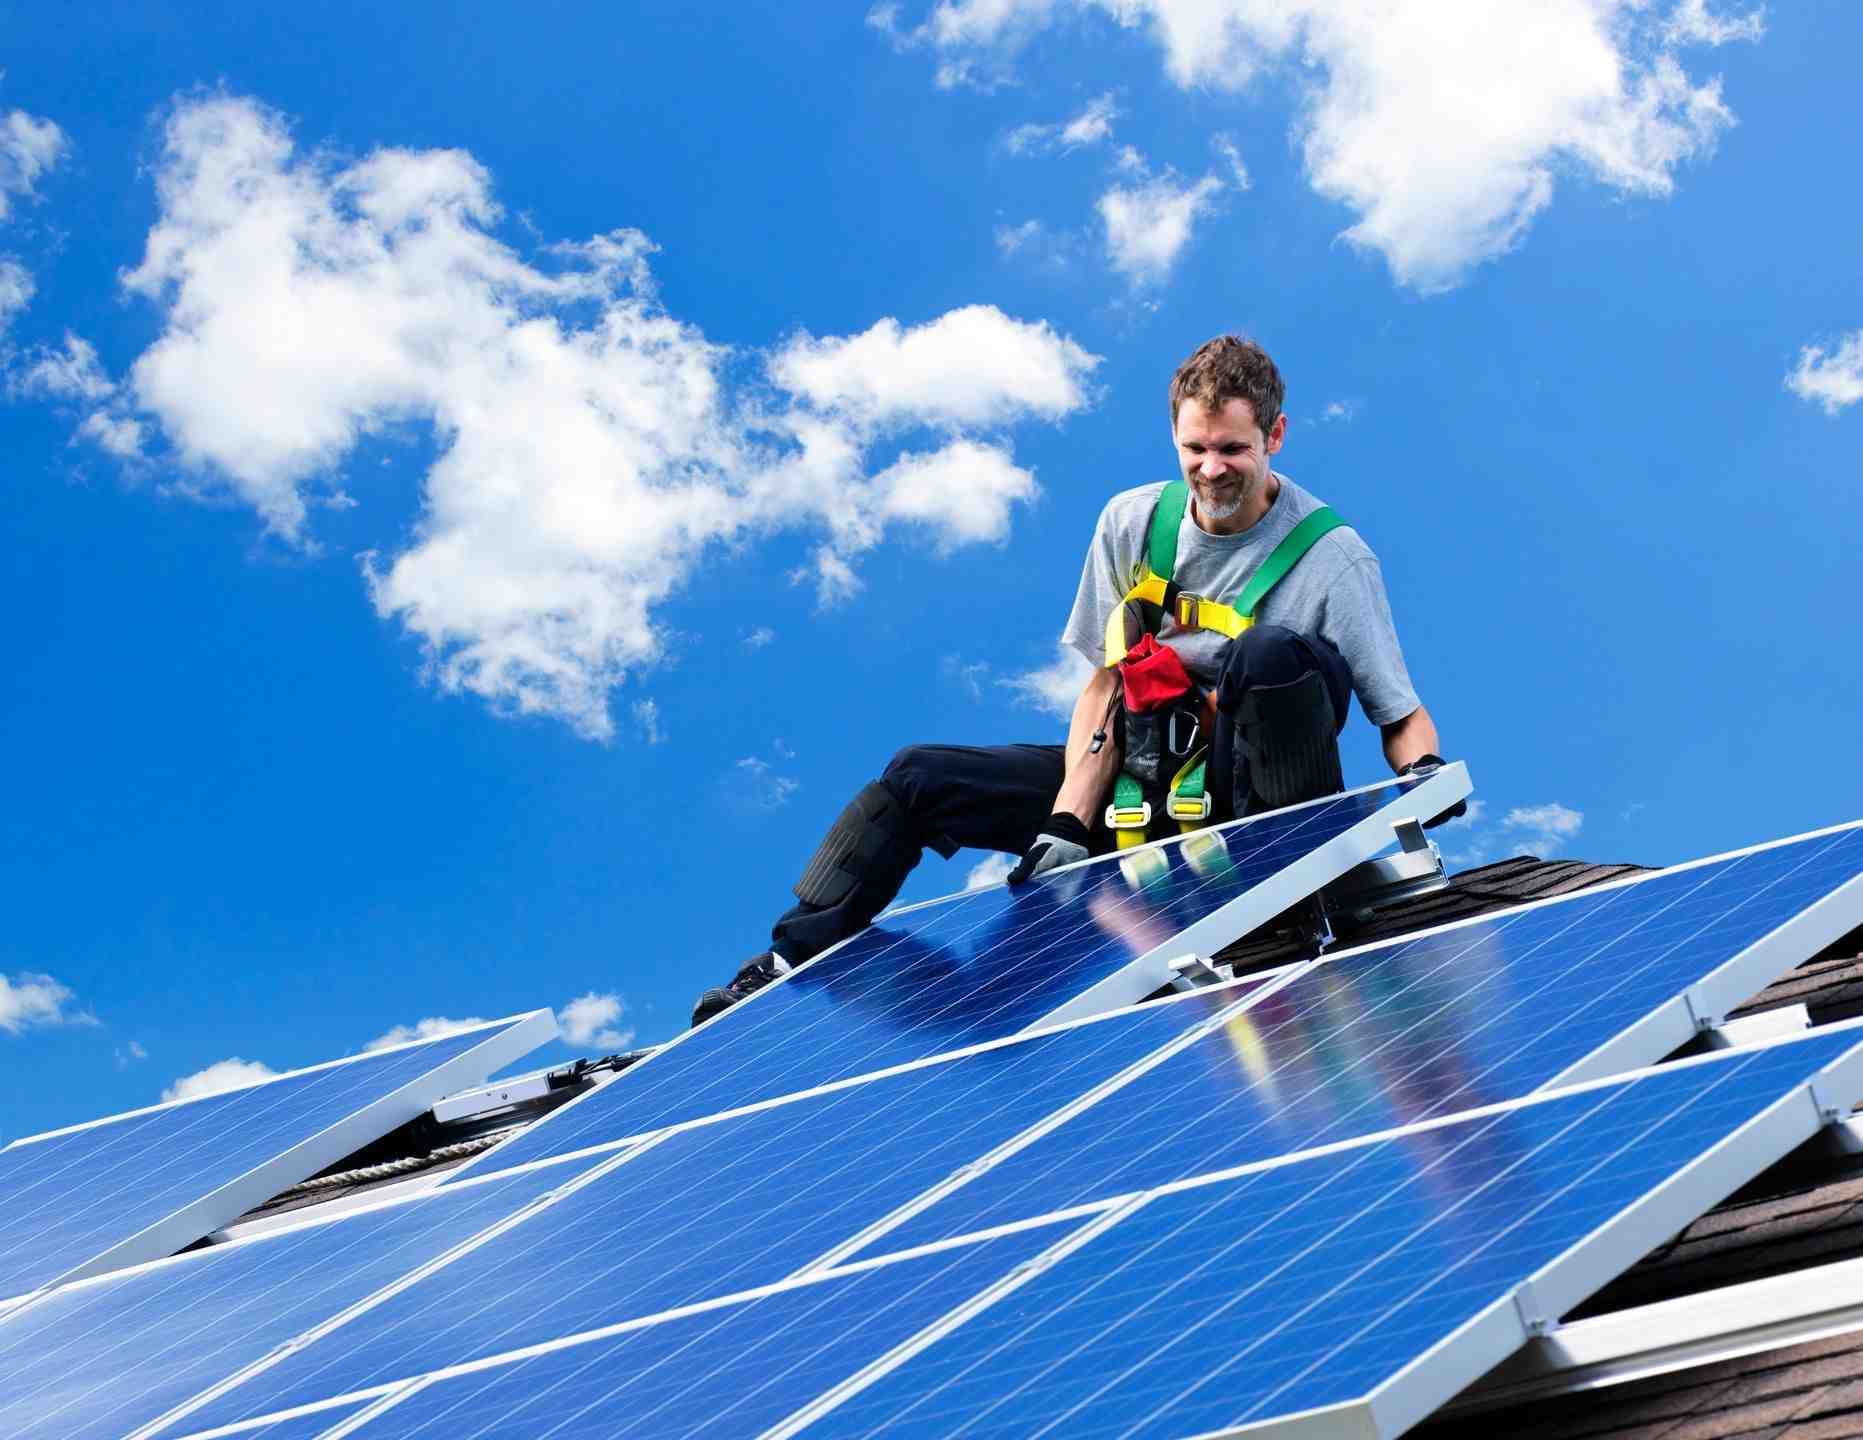 How much does a 5kW solar battery cost?